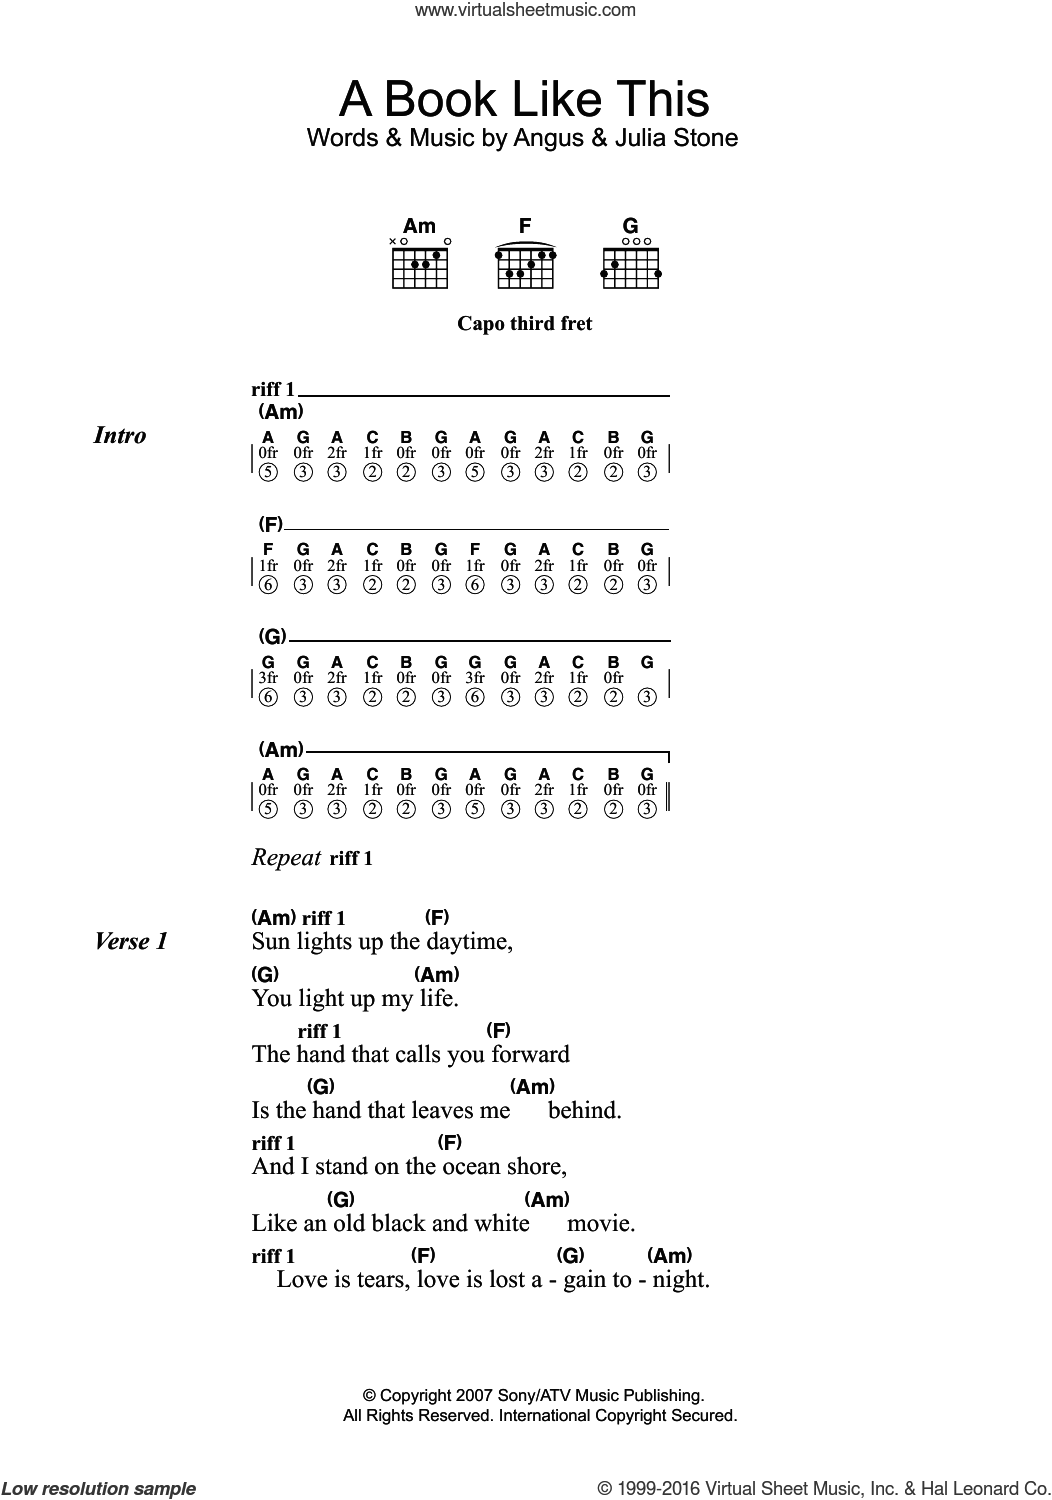 A Book Like This sheet music for guitar (chords) by Julia Stone and Angus Stone, intermediate skill level